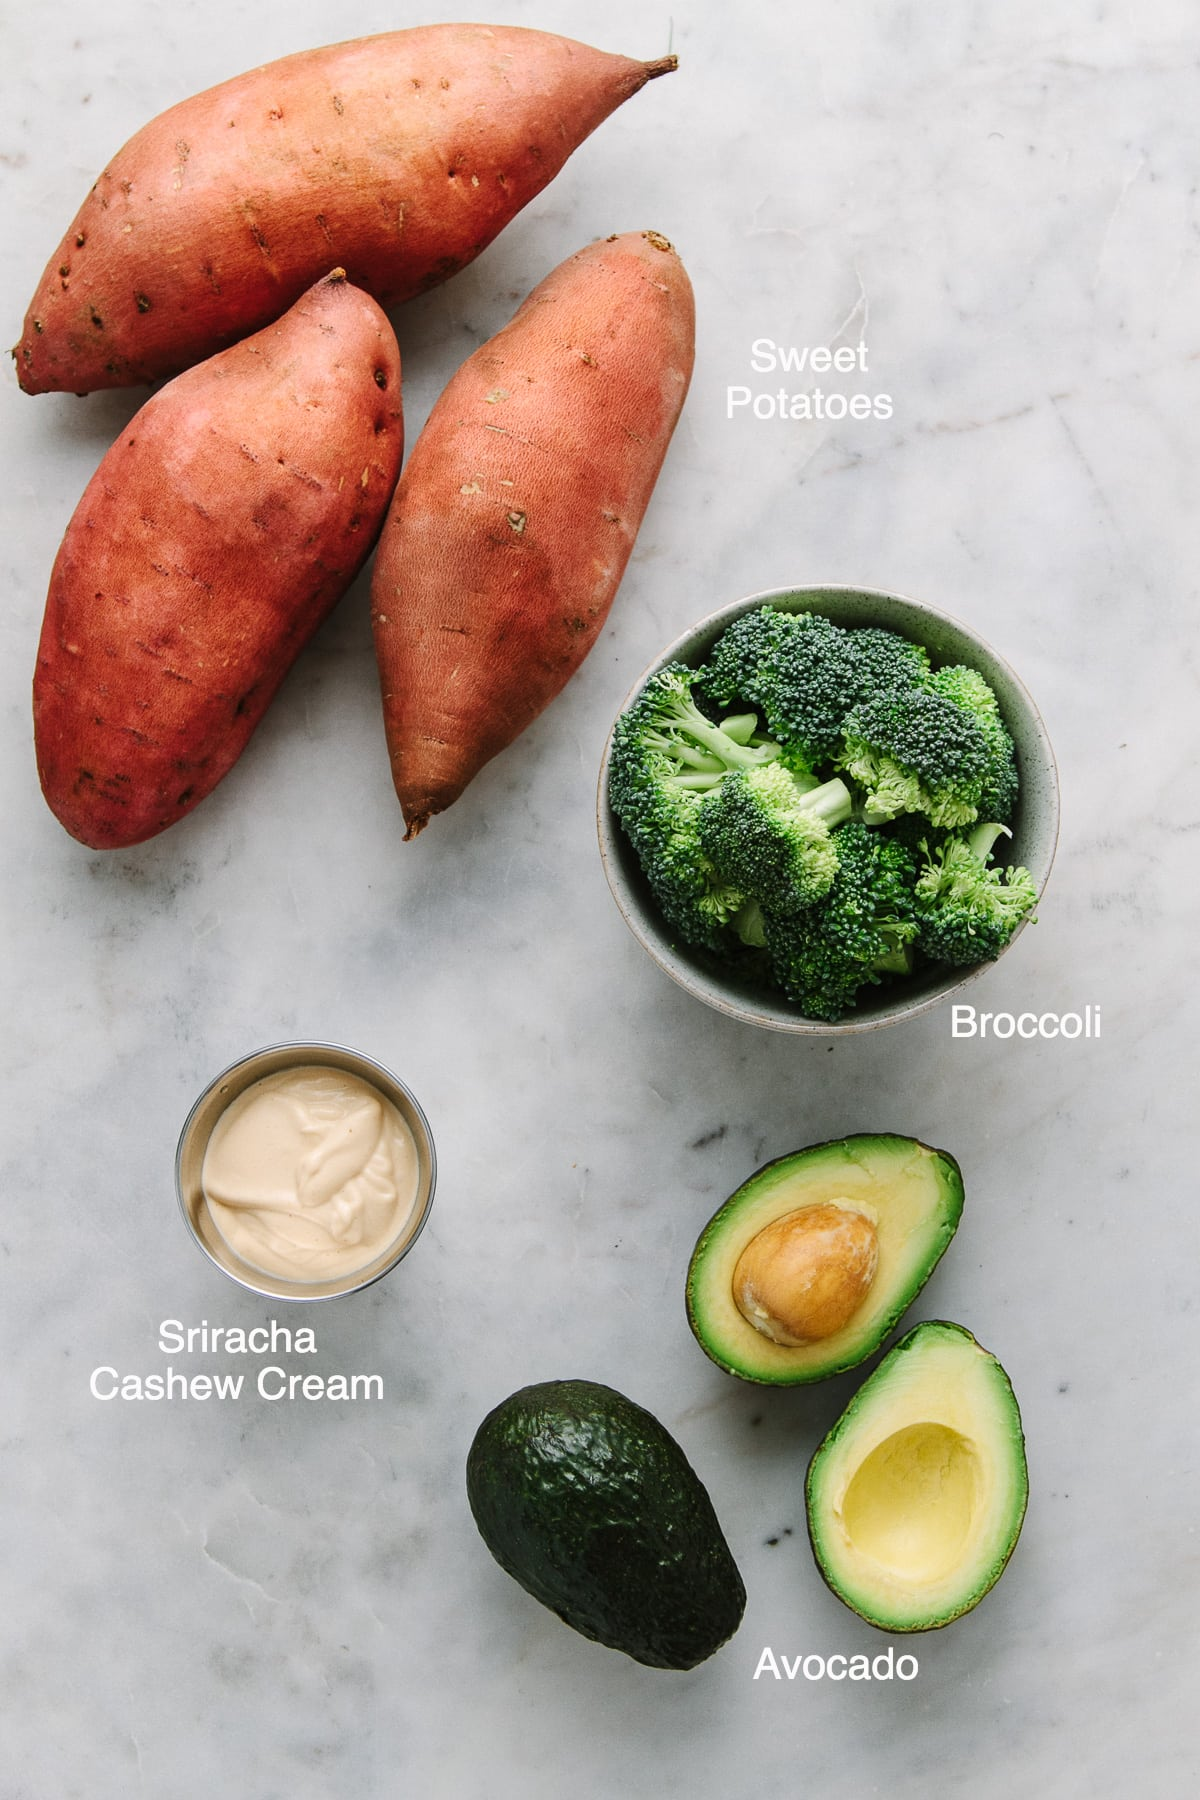 top down view of the ingredients used to make vegan stuffed sweet potatoes.